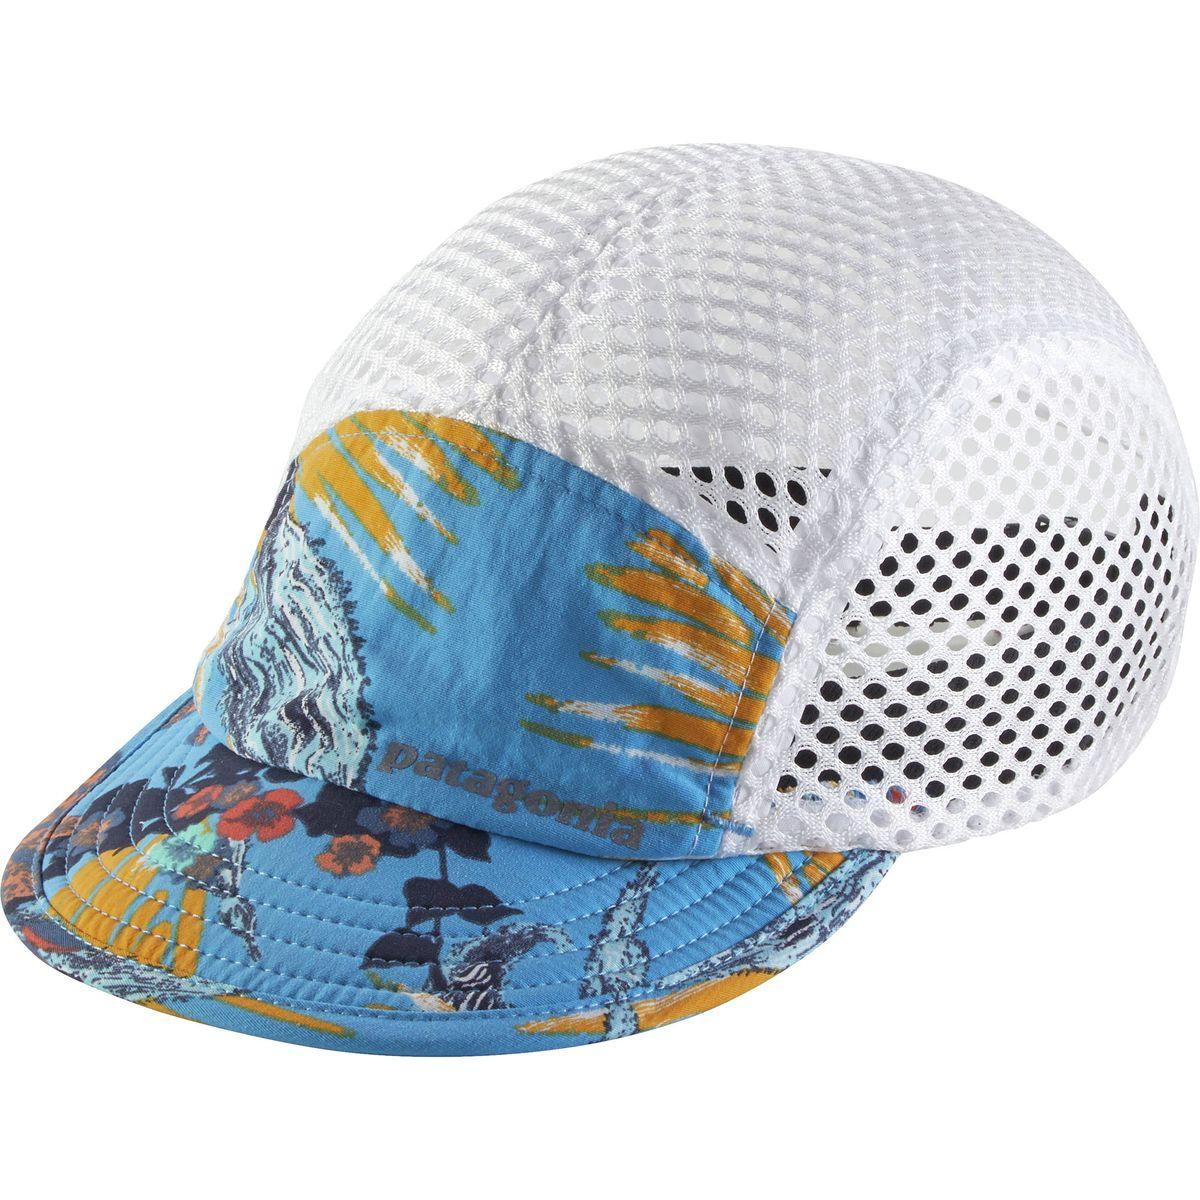 6a74afeb198 Lyst - Patagonia Duckbill Cap in Blue